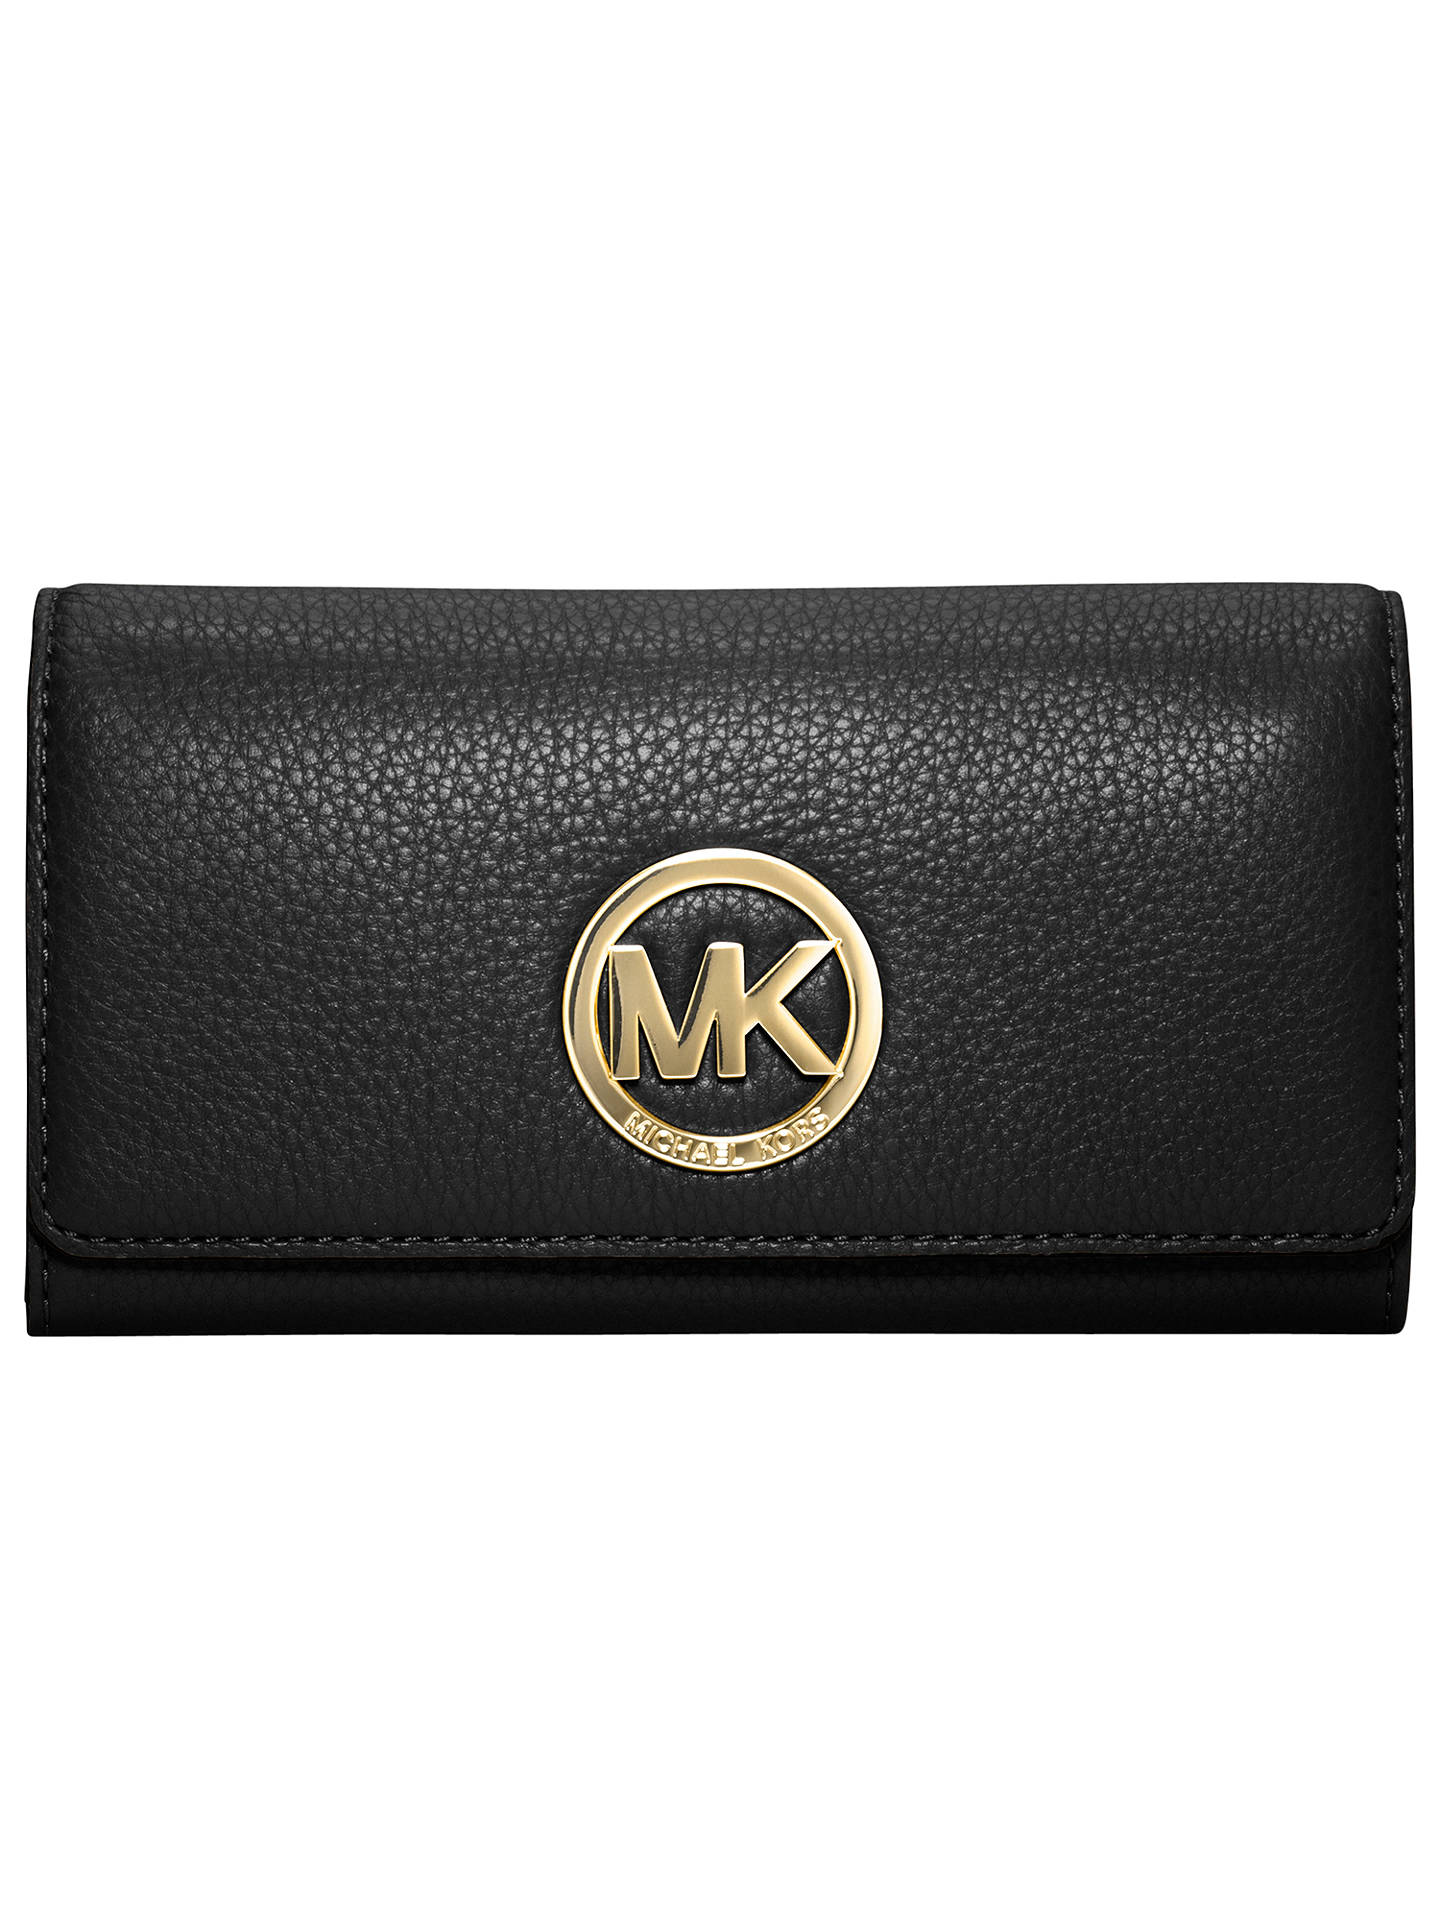 d936bb669836 Buy MICHAEL Michael Kors Fulton Carryall Leather Purse, Black Online at  johnlewis.com ...